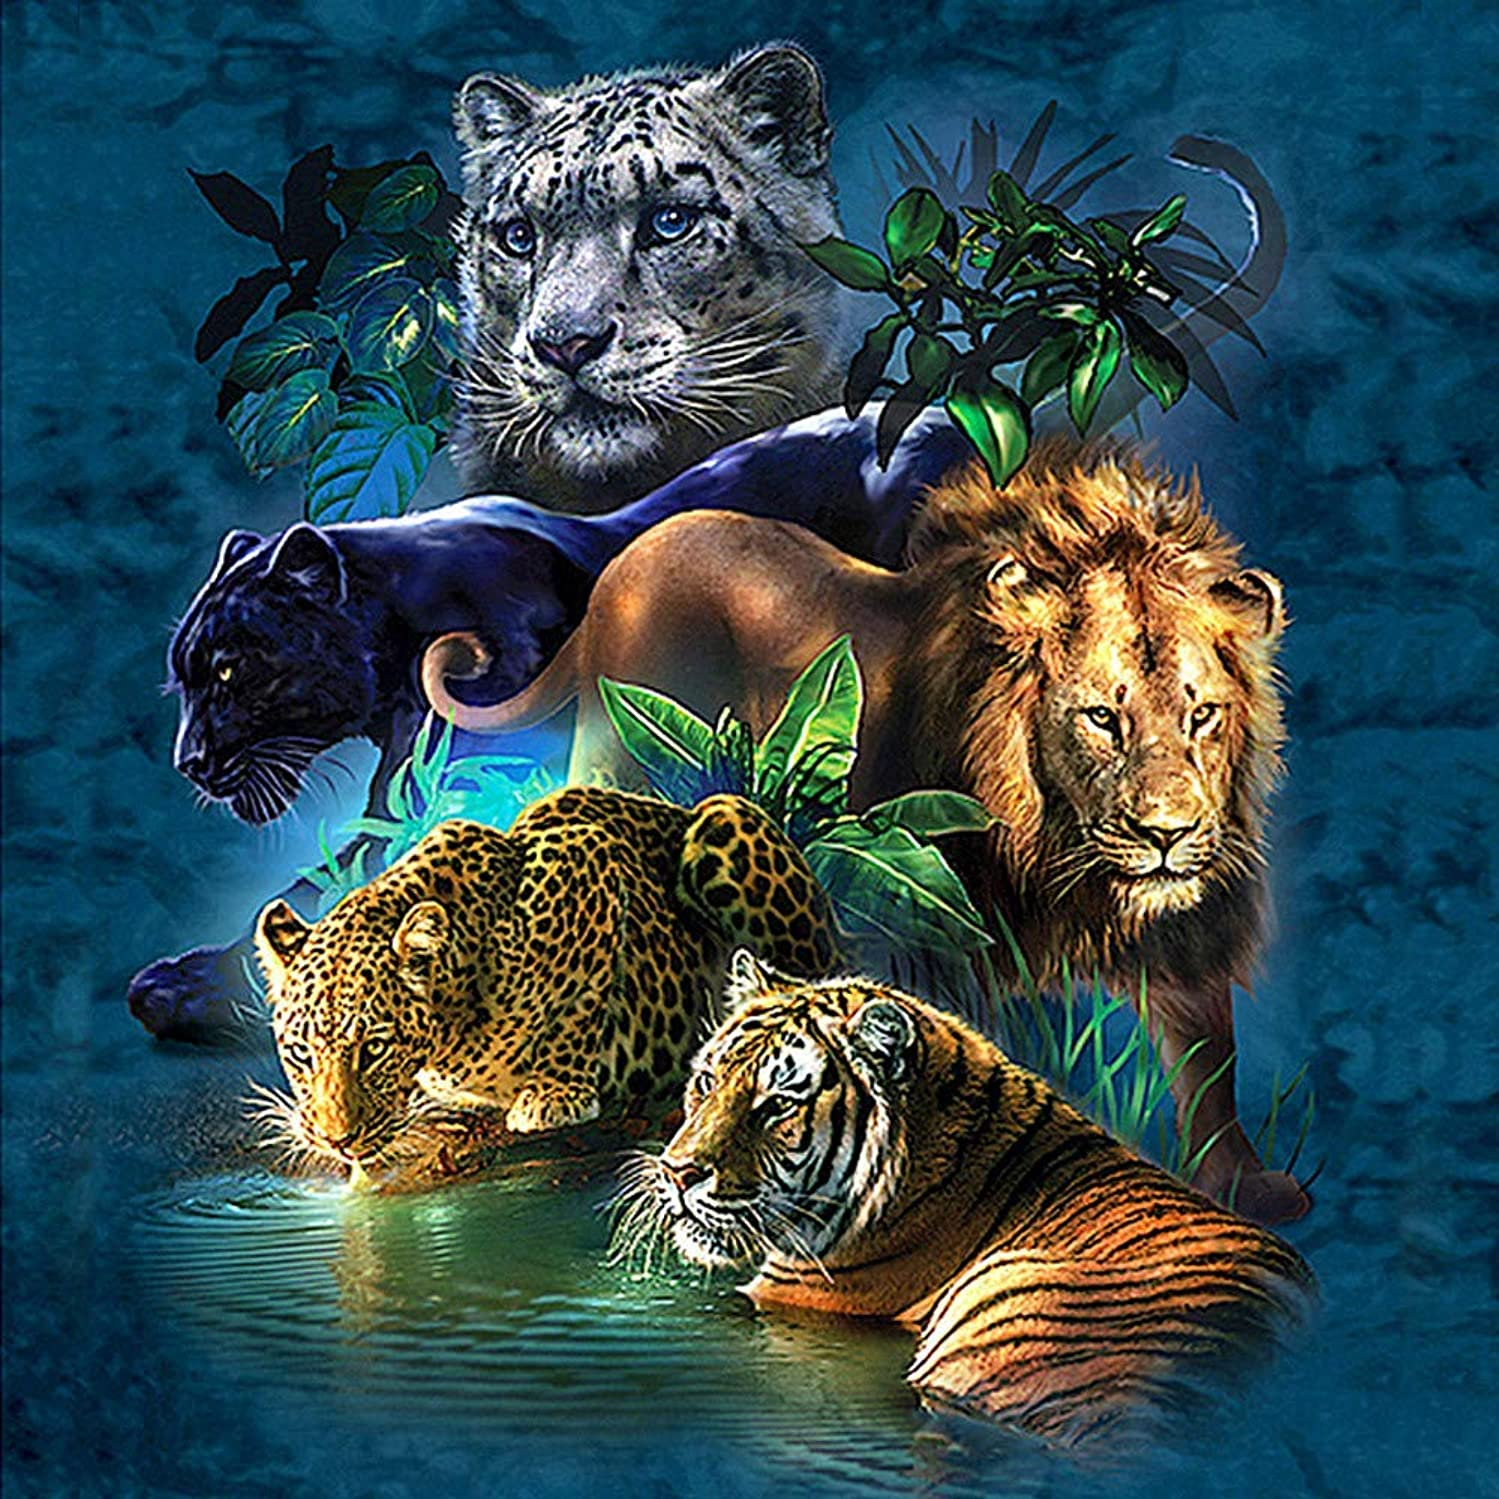 BoutiQ Diamond Painting by Number Kits 5D DIY Crystal Rhinestone Diamond Embroidery Paintings Pictures Arts Craft for Home Wall Decor Full Drills Decorative Cross Stitch Animals Tiger Leopard